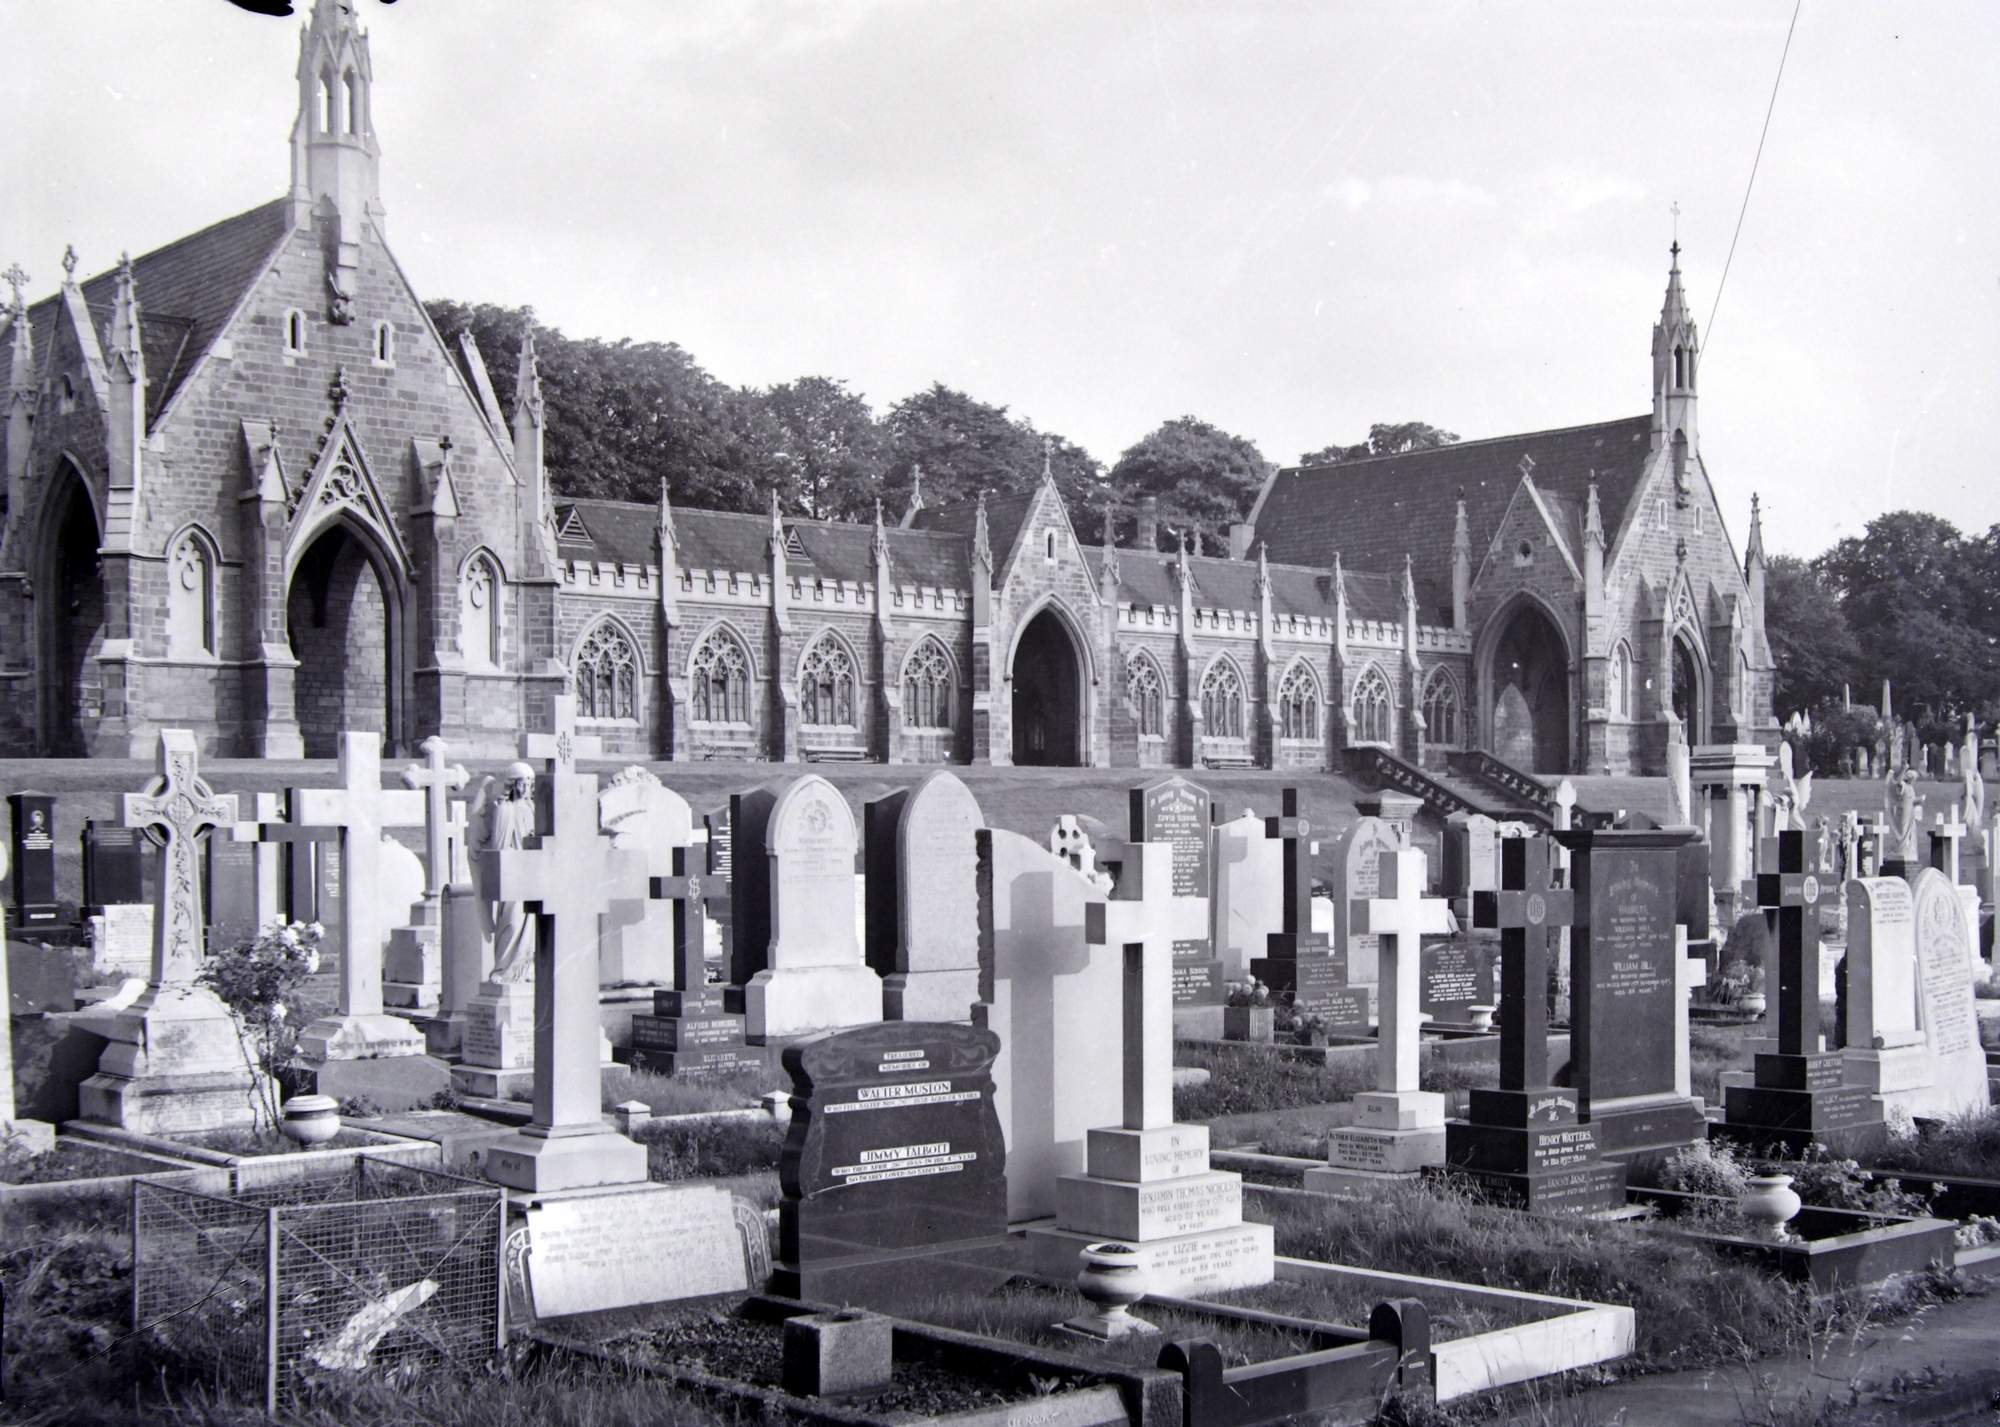 Welford Road Cemetary